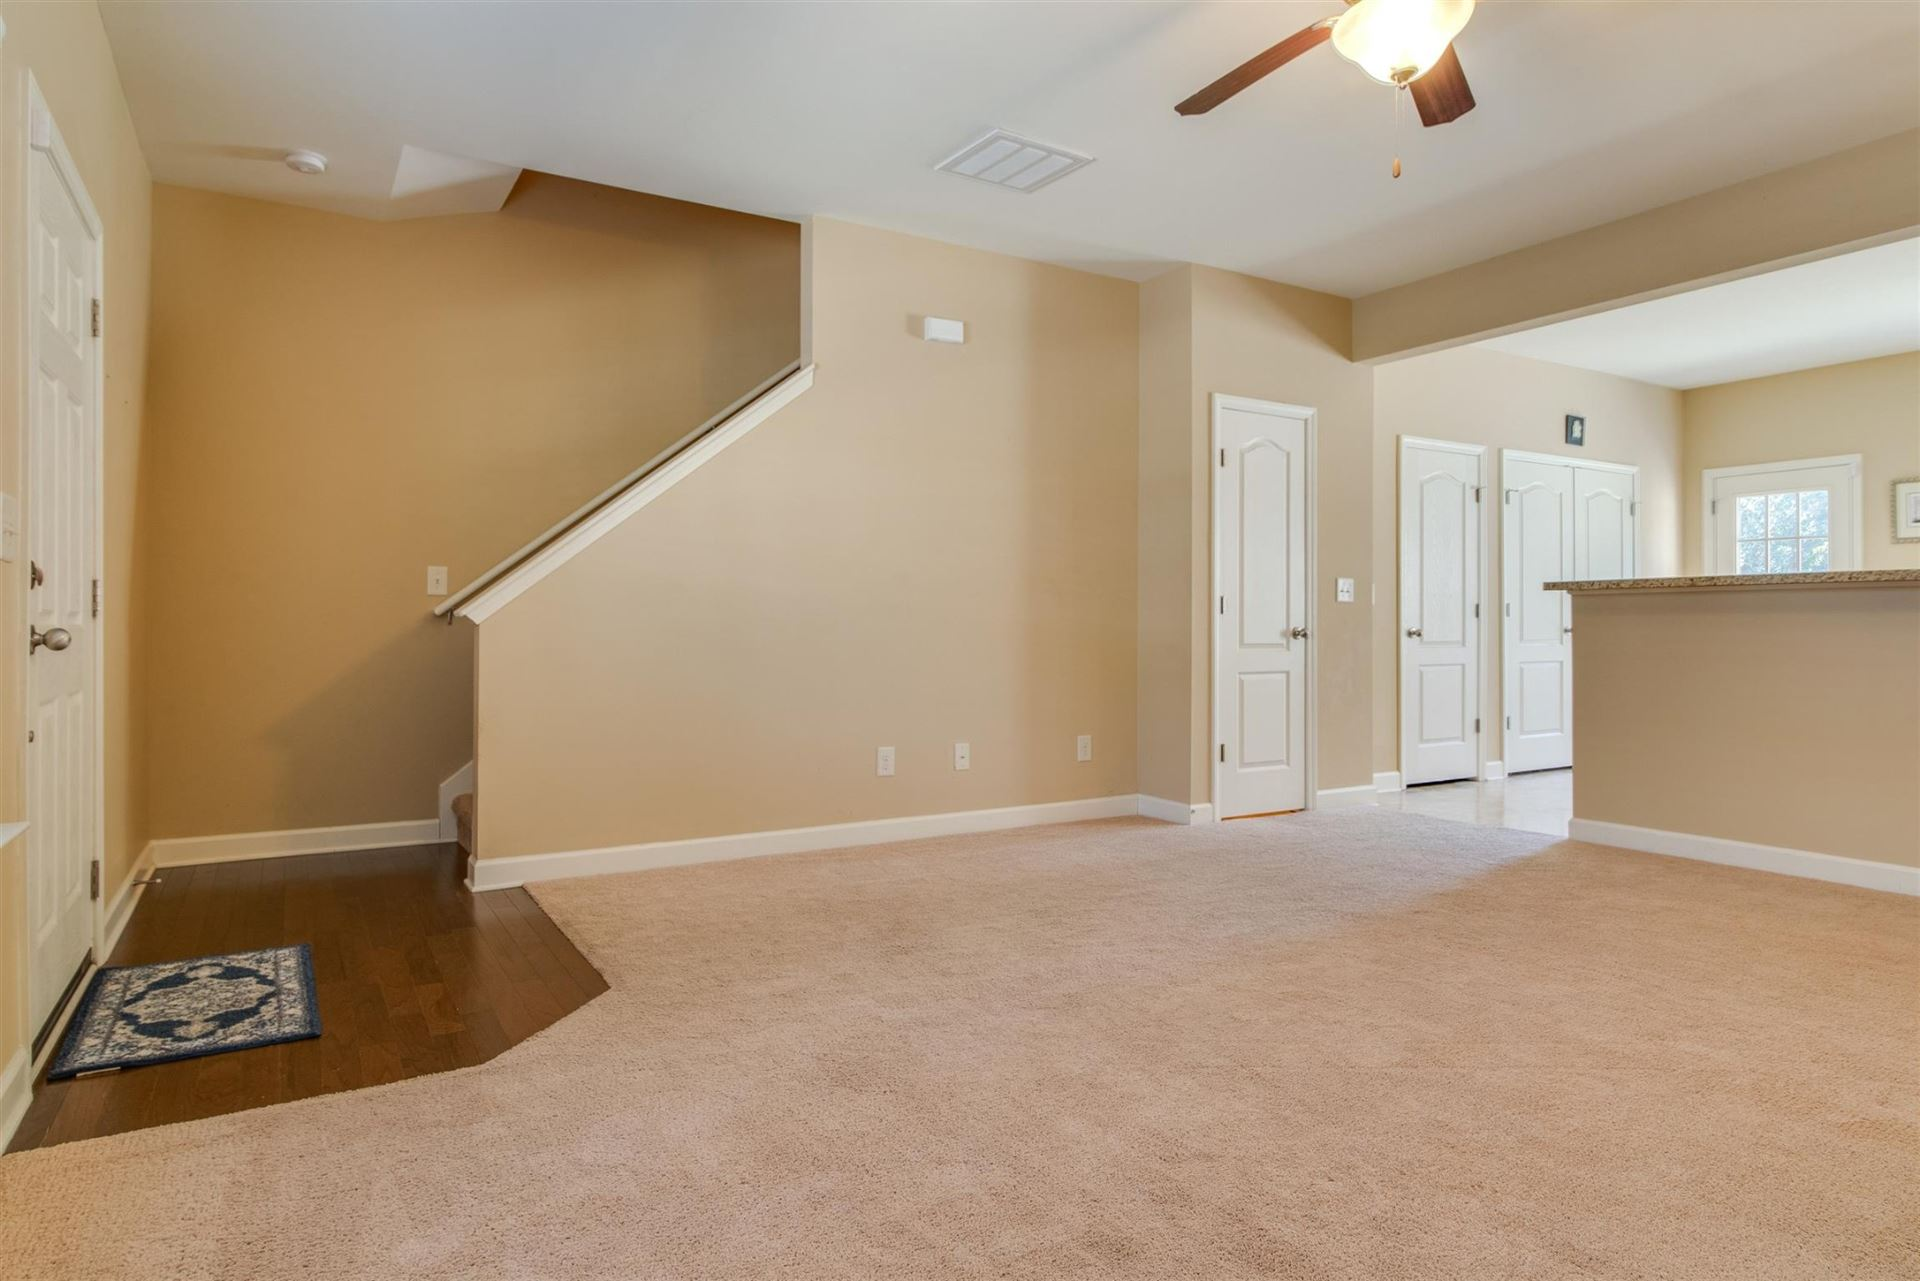 Property Image Of 735 Tulip Grove Rd #352 In Hermitage, Tn